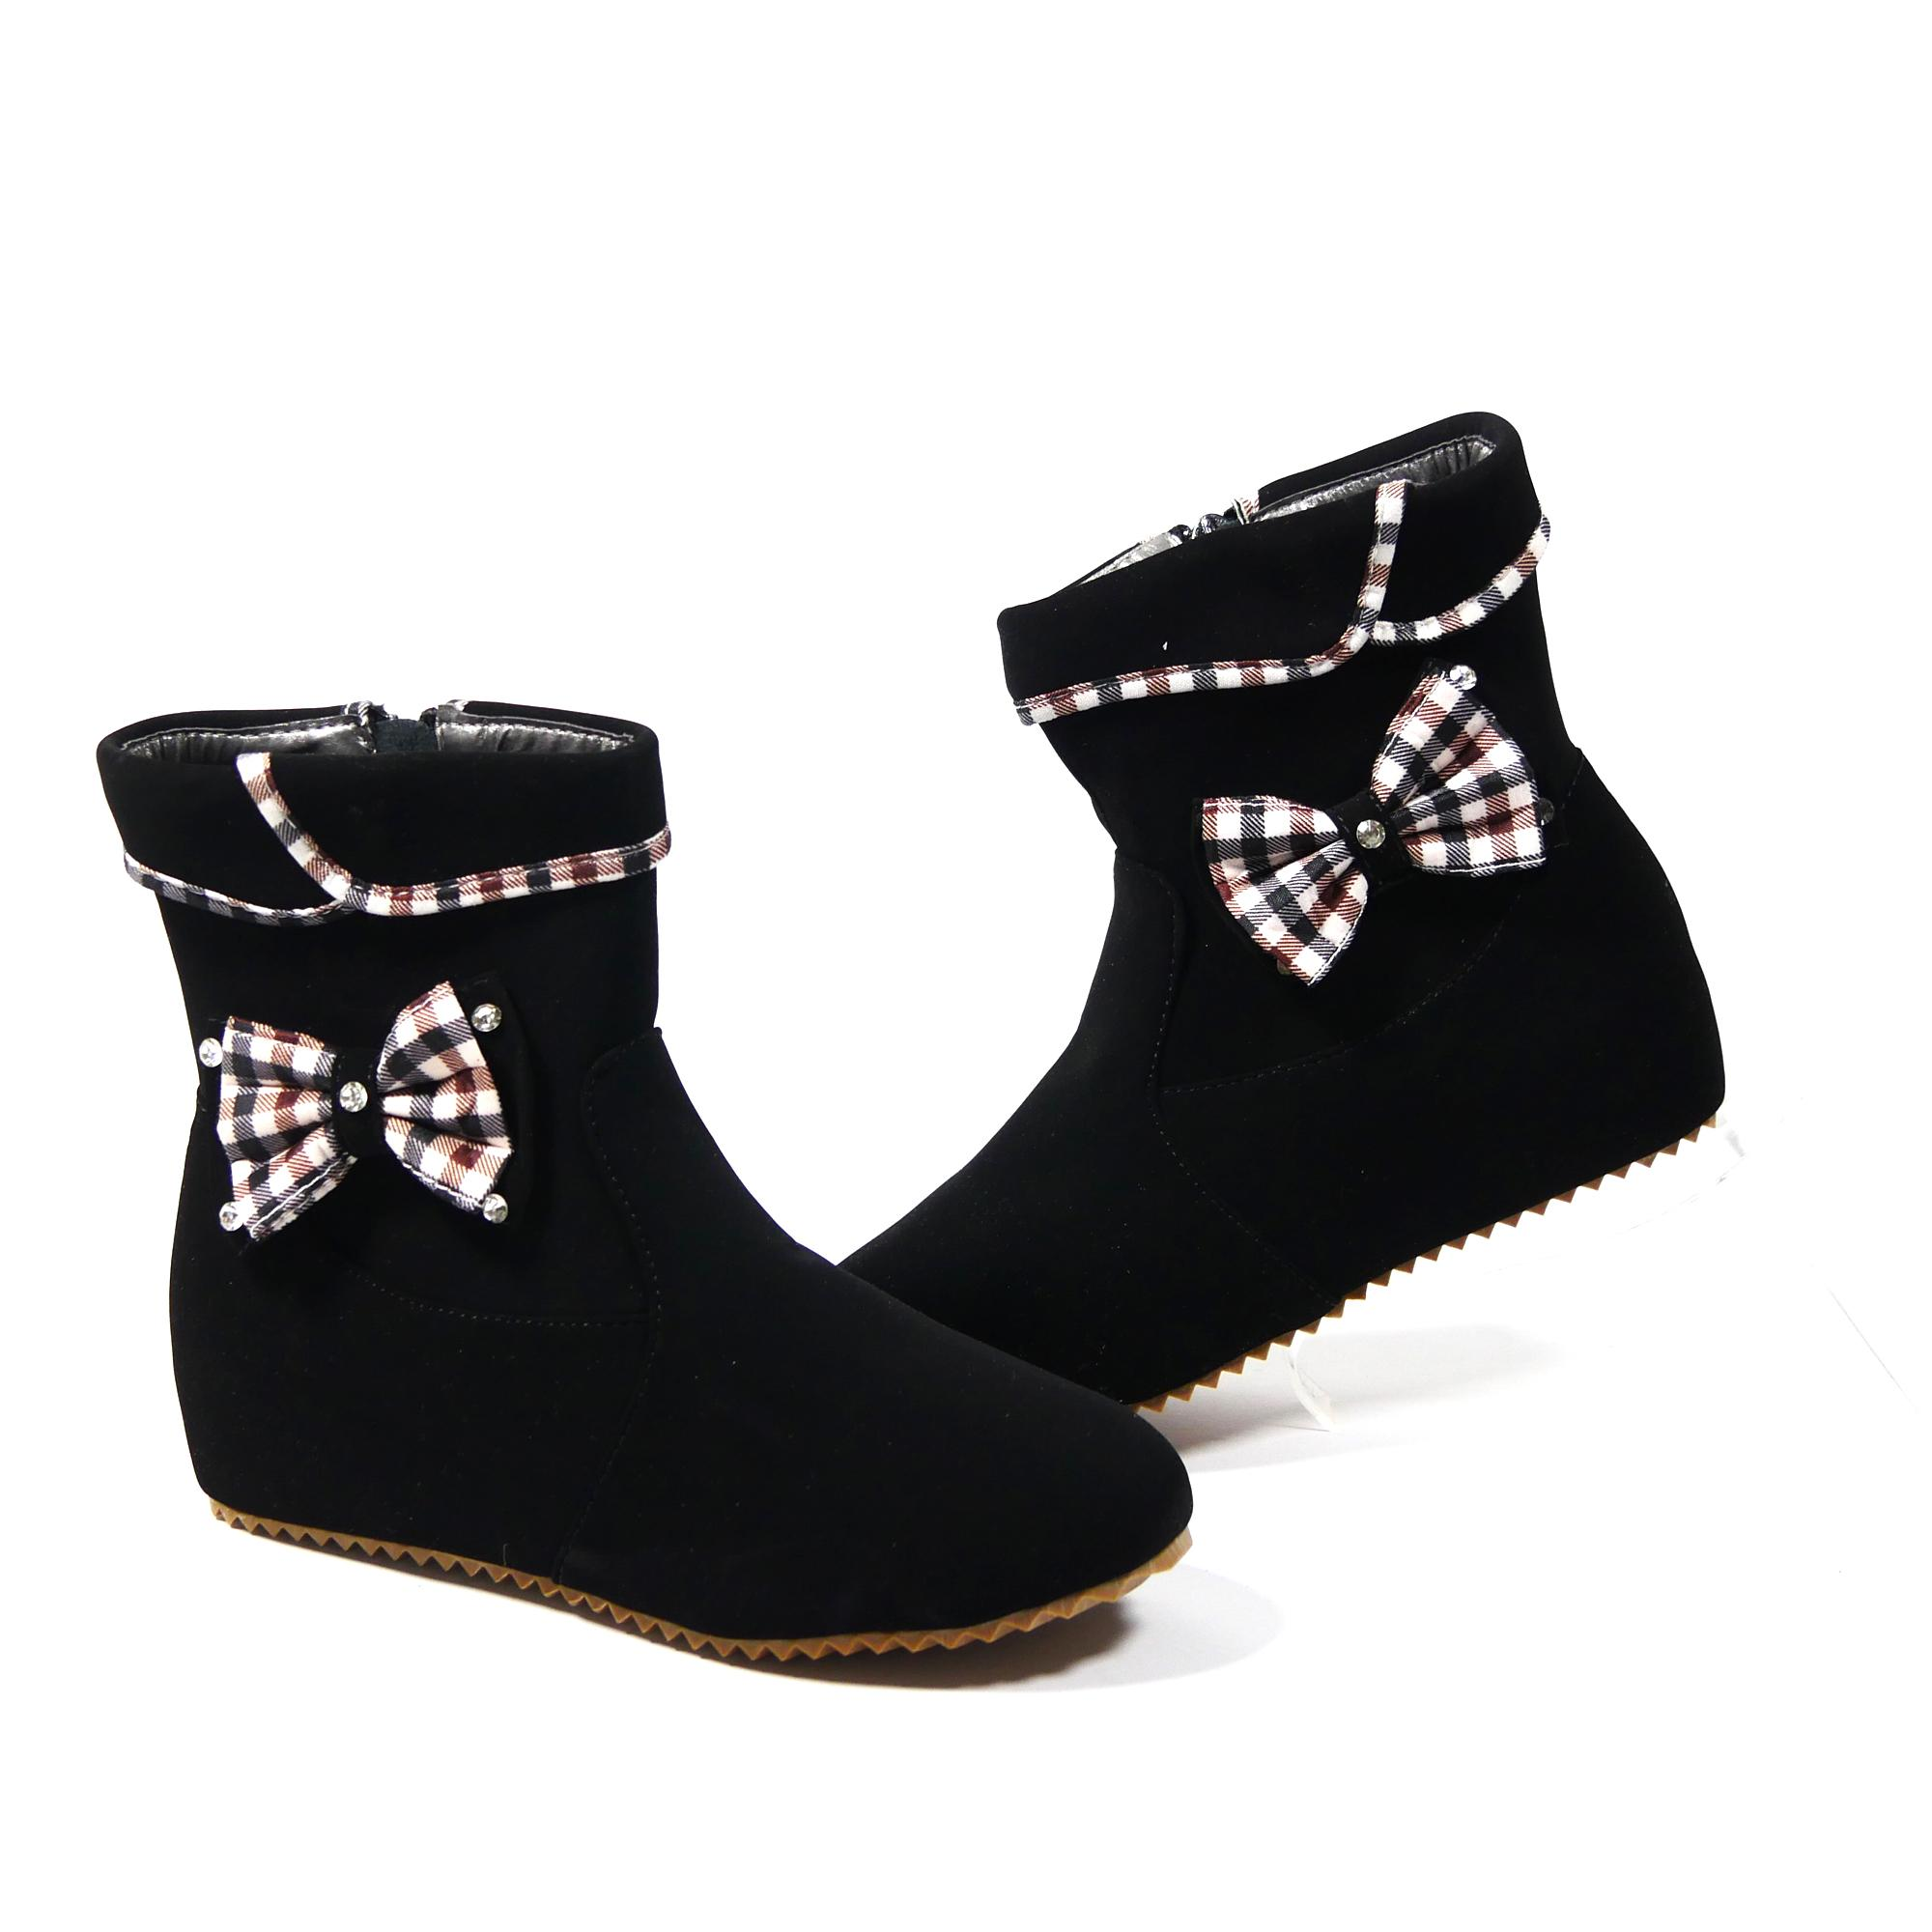 b5b5fc68d48d6 Girls Boots for sale - Boots for Girls online brands